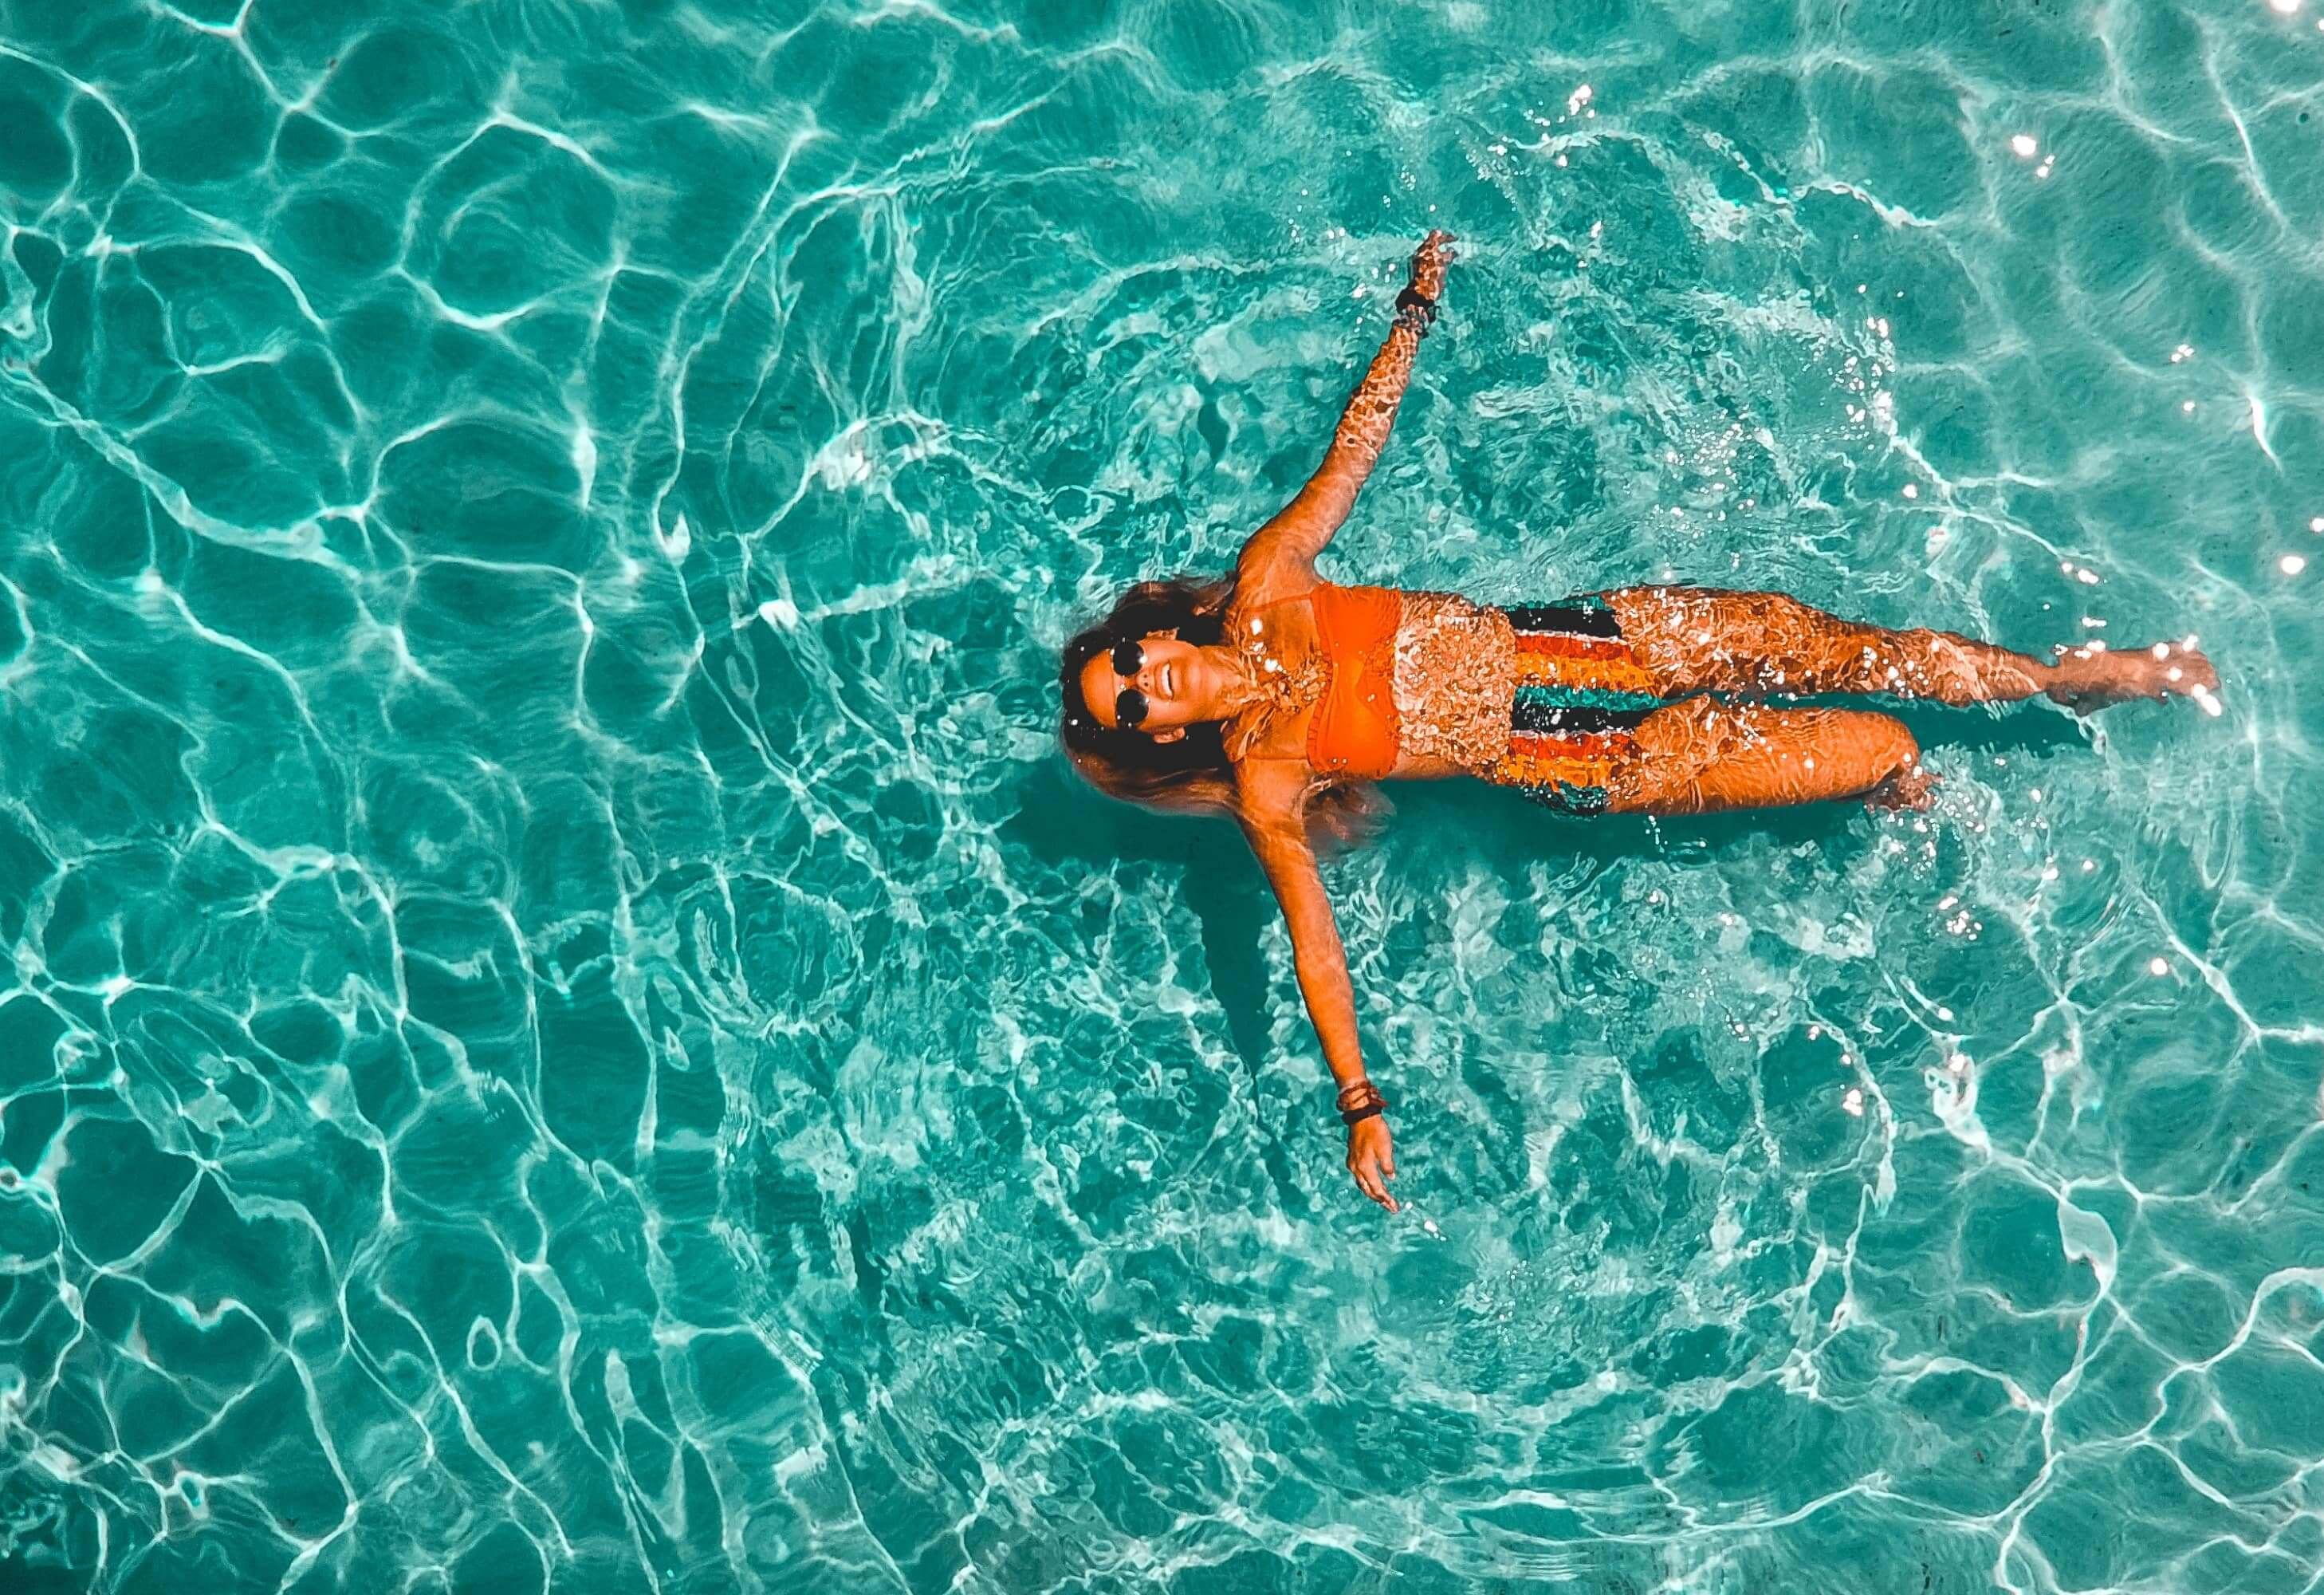 A woman swimming in clean and fresh pool